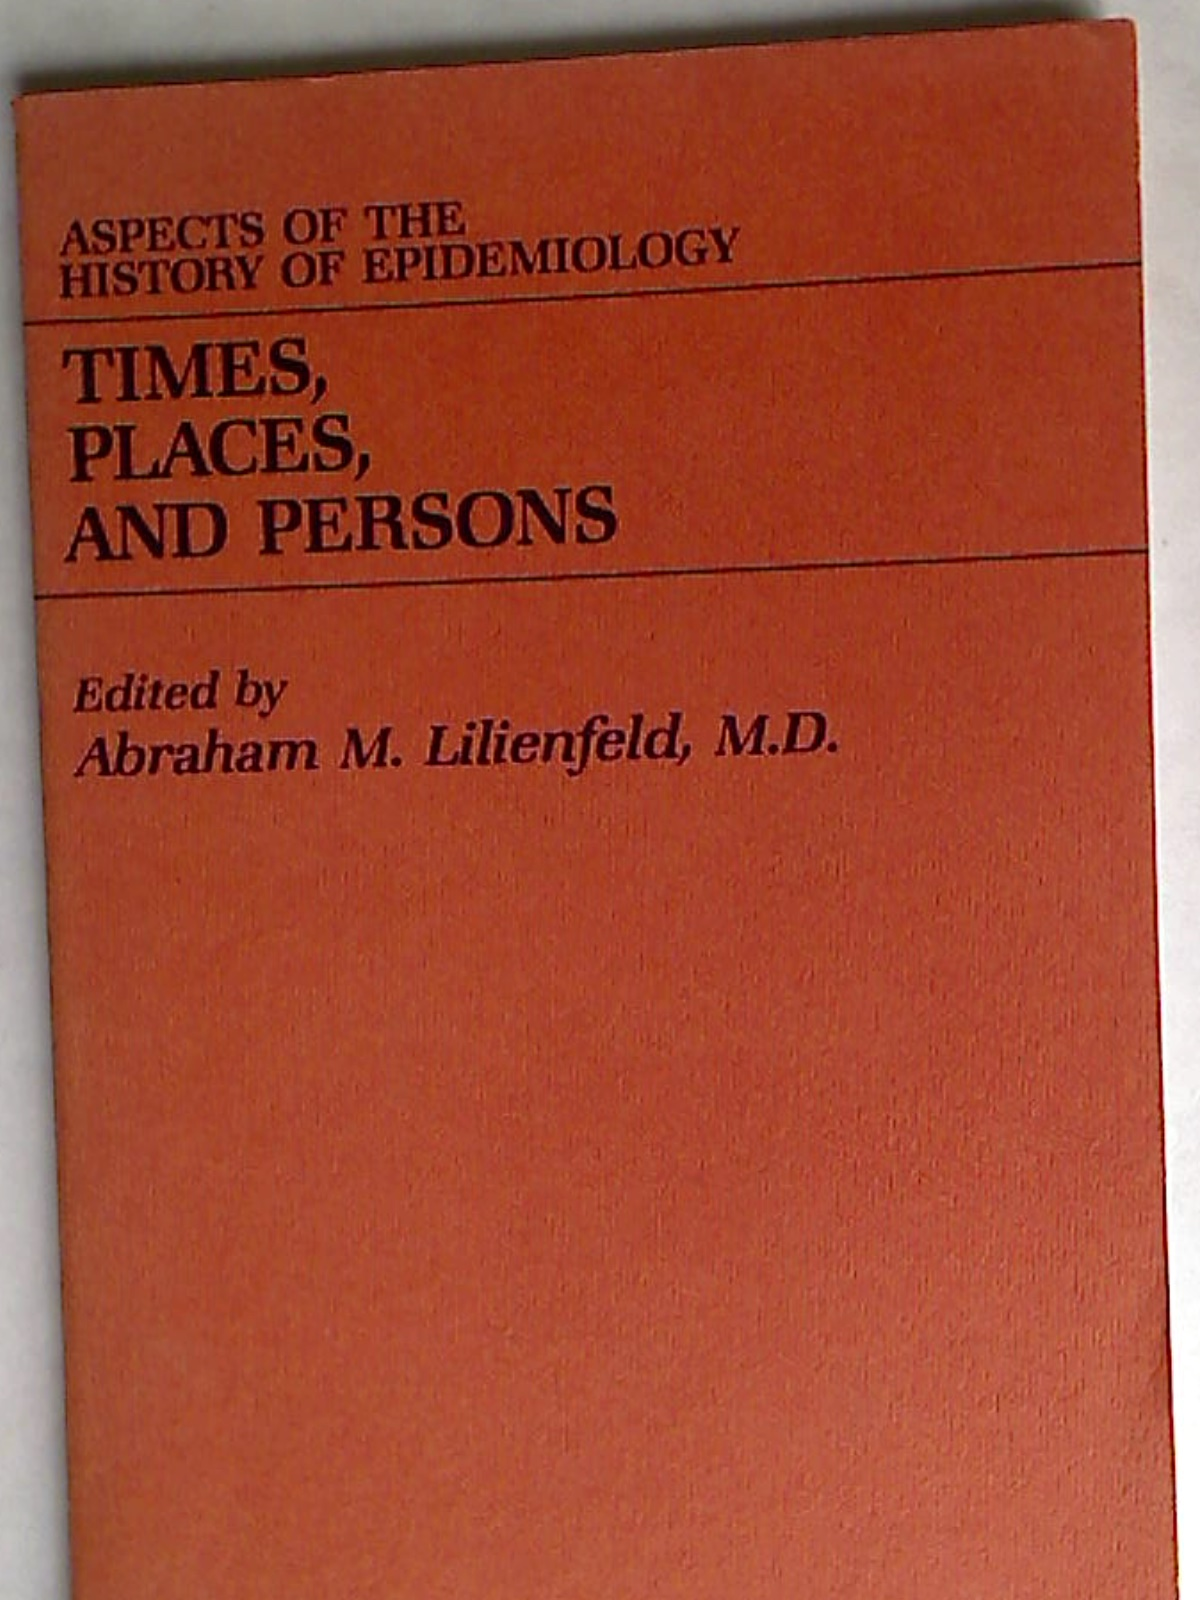 Times, Places, and Persons: Aspects of the History of Epidemiology.